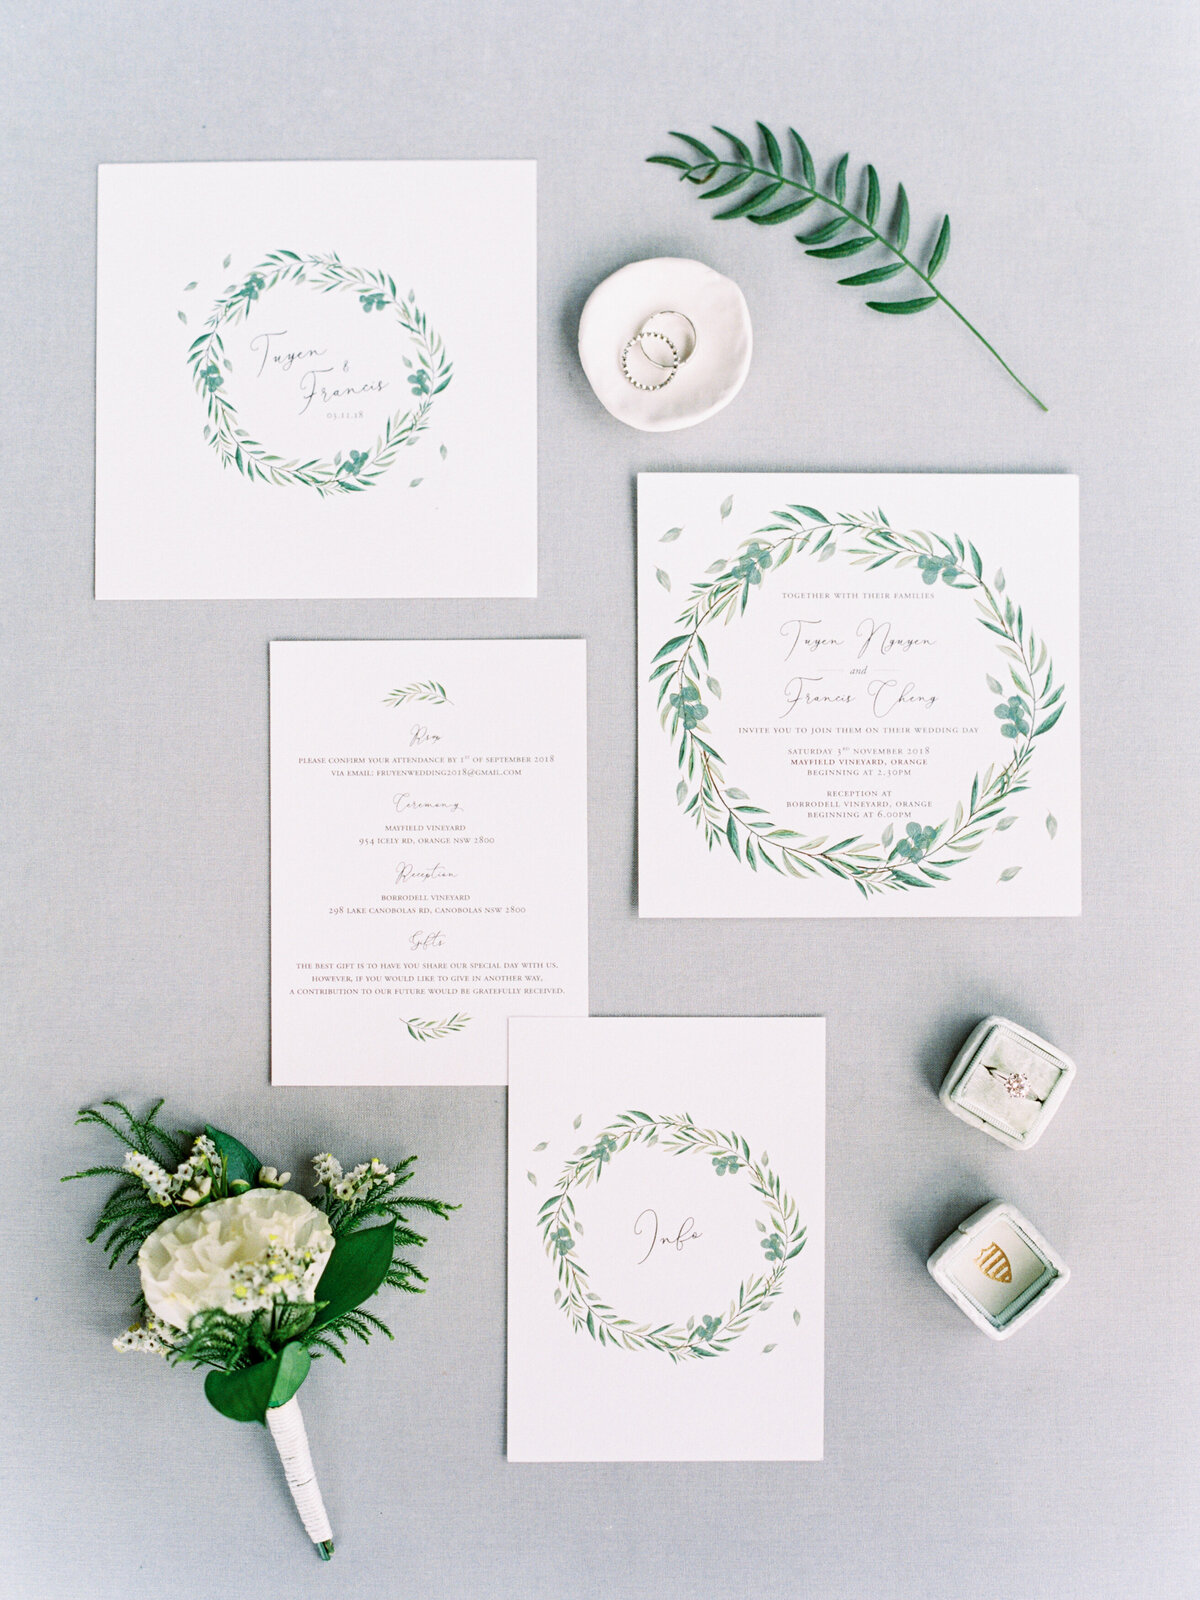 weareorigami-tuyen-francis-wedding-0002